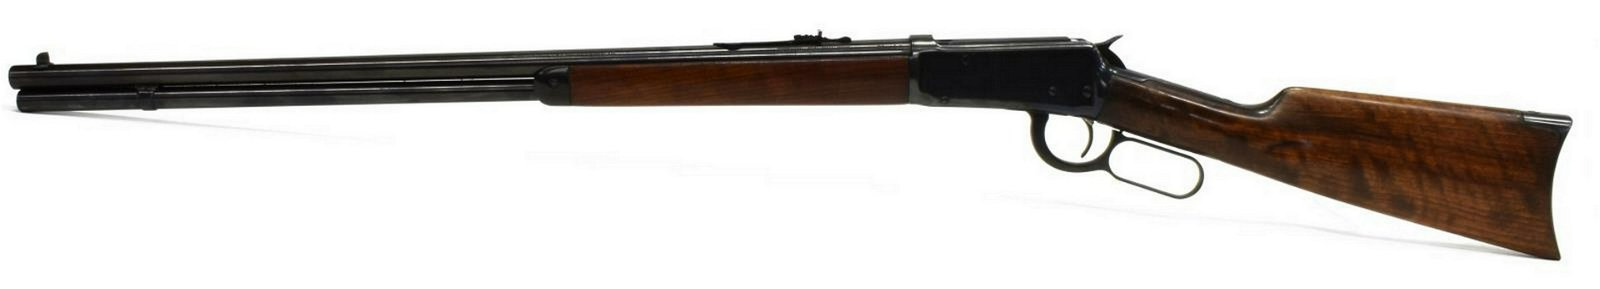 WINCHESTER MODEL 1894 LEVER ACTION RIFLE, .30-30